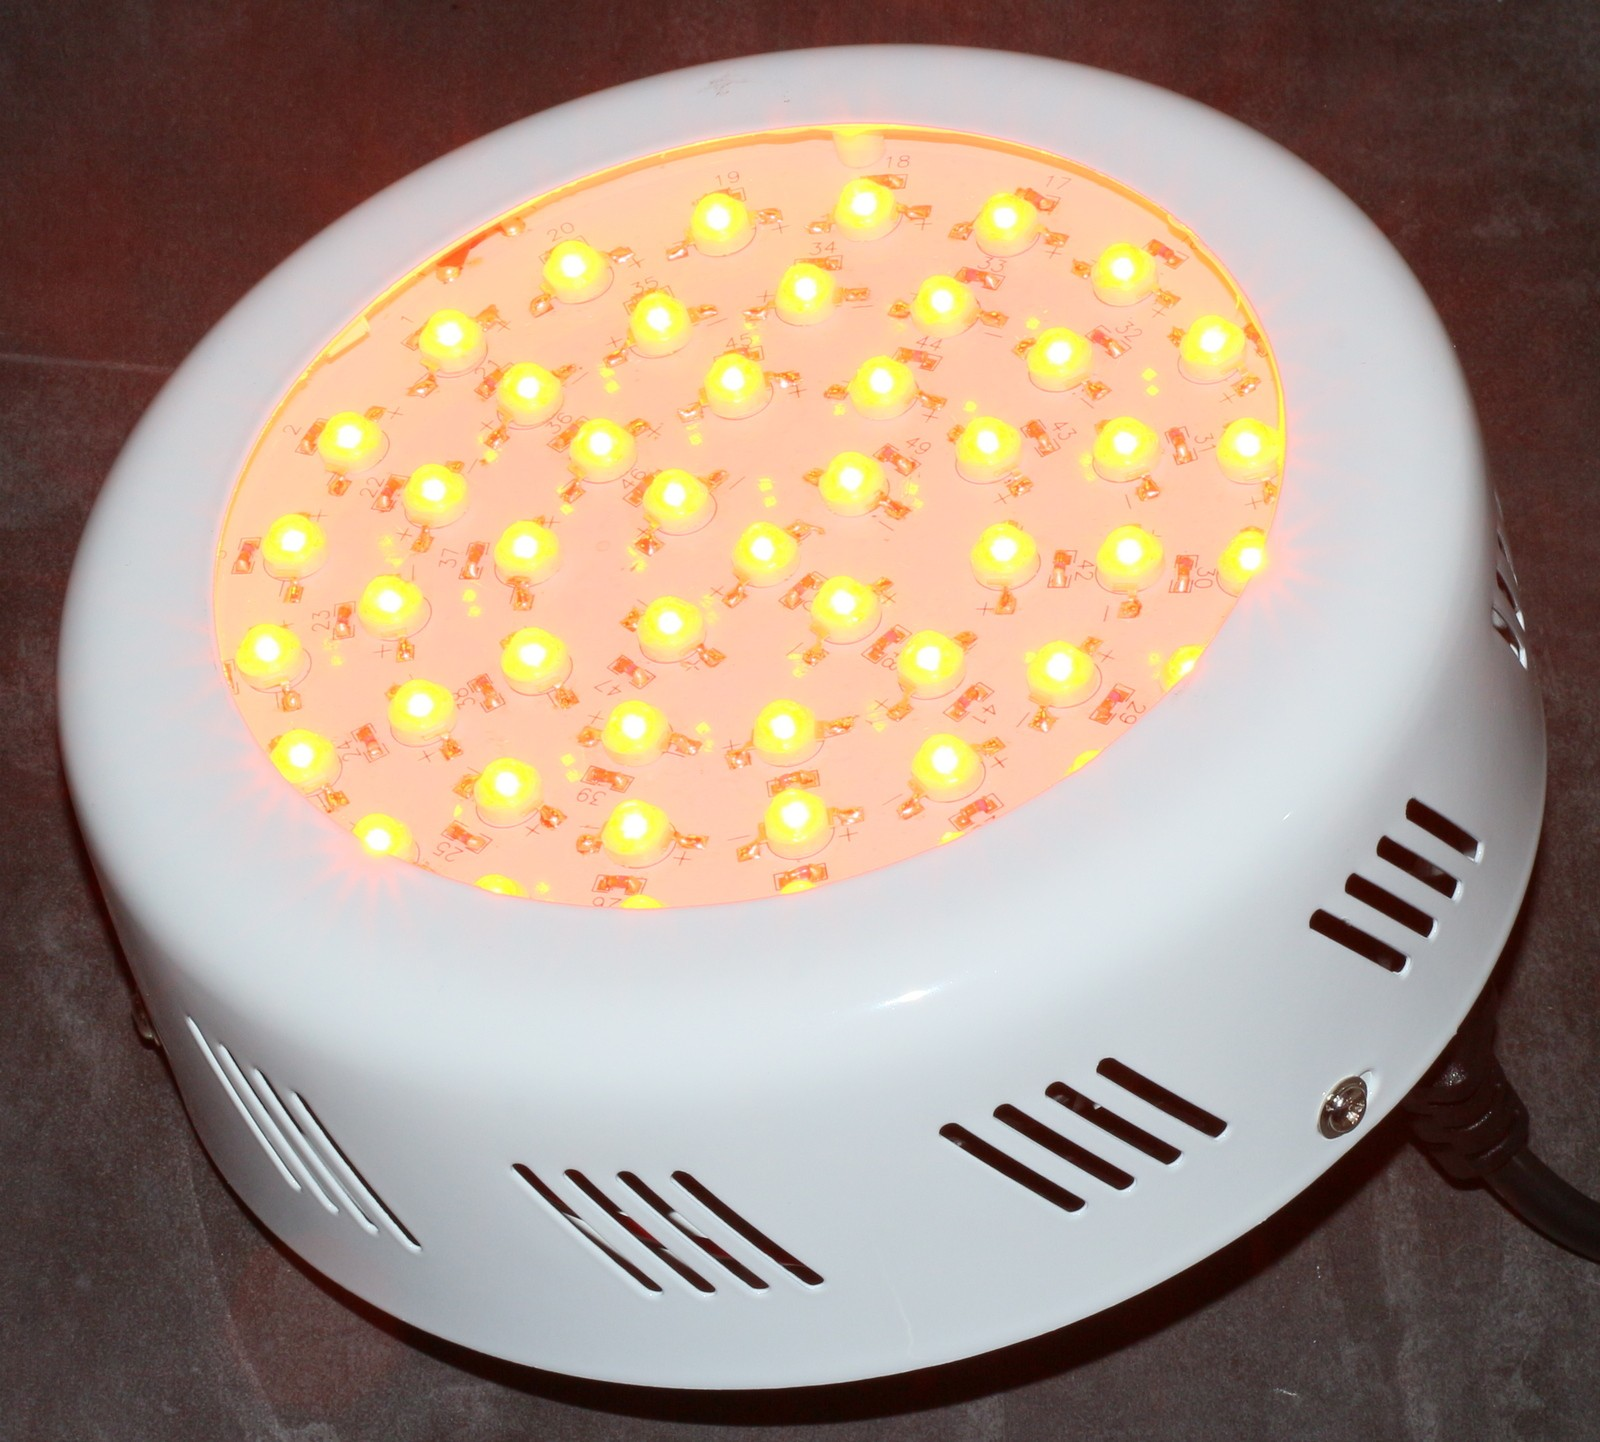 Led Pflanzenlicht Led Pflanzenlicht Ufo 50 Watt Asian Fashion Shop